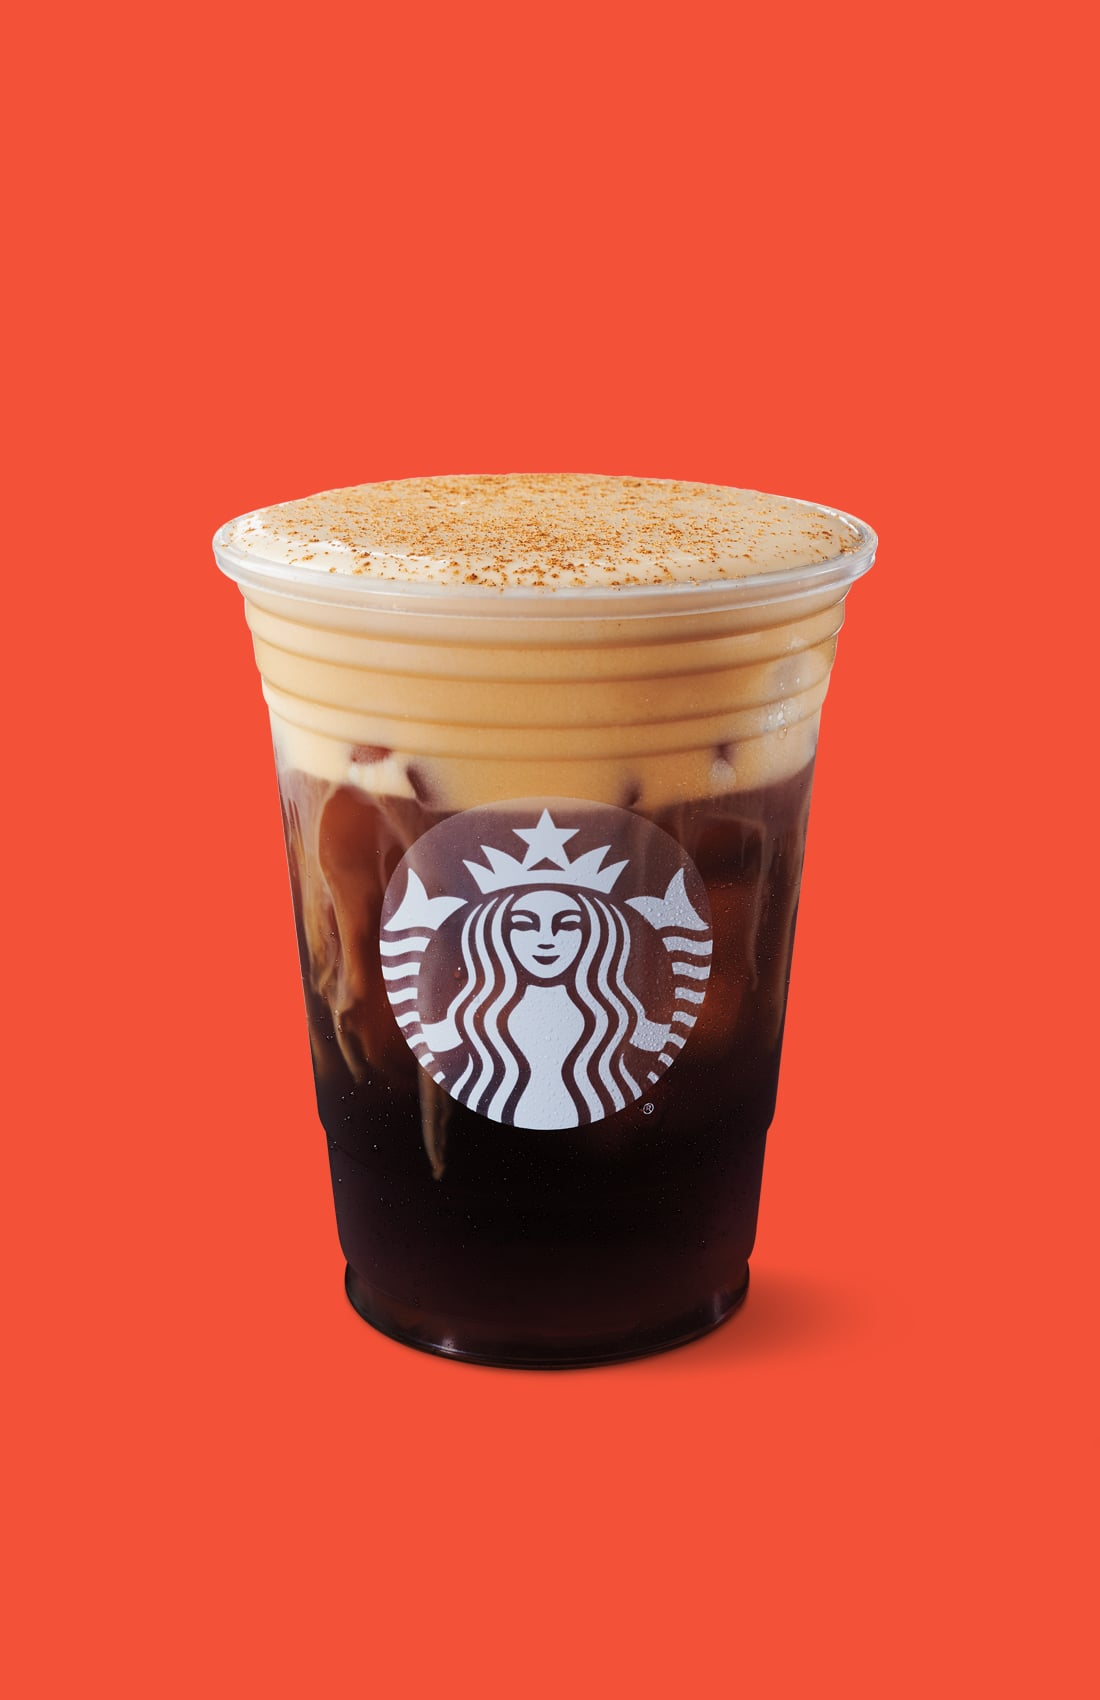 Step Aside, PSL — Starbucks' New Pumpkin Cream Cold Brew Is Here to Steal the Show